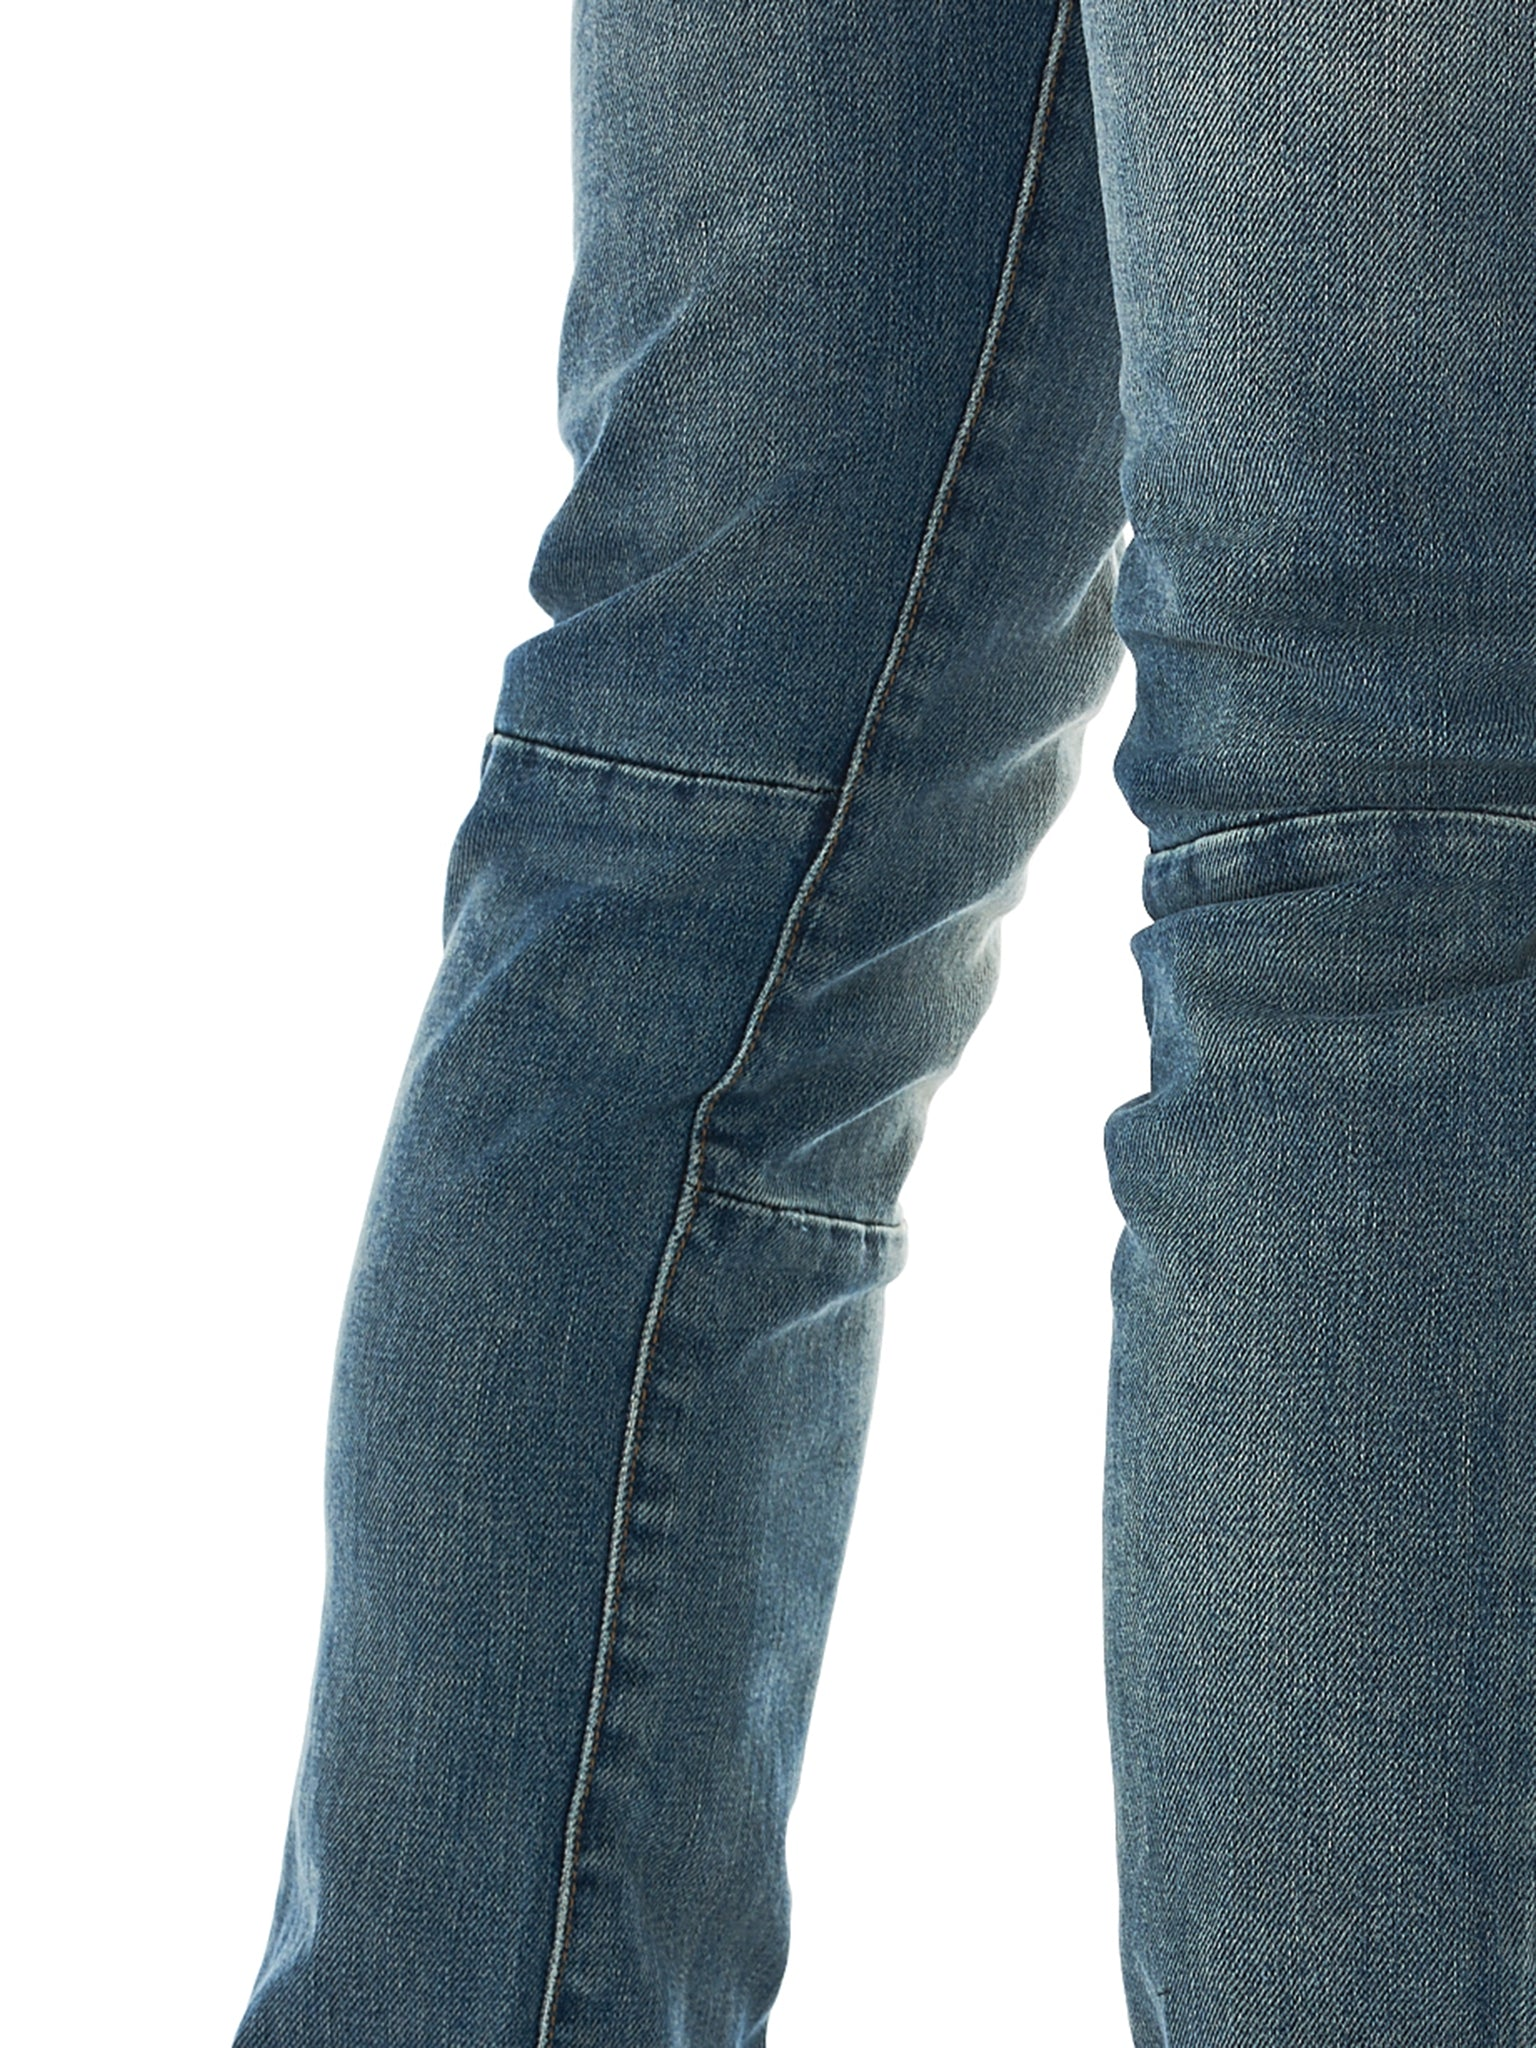 Unravel Distressed Jeans - Hlorenzo Detail 1